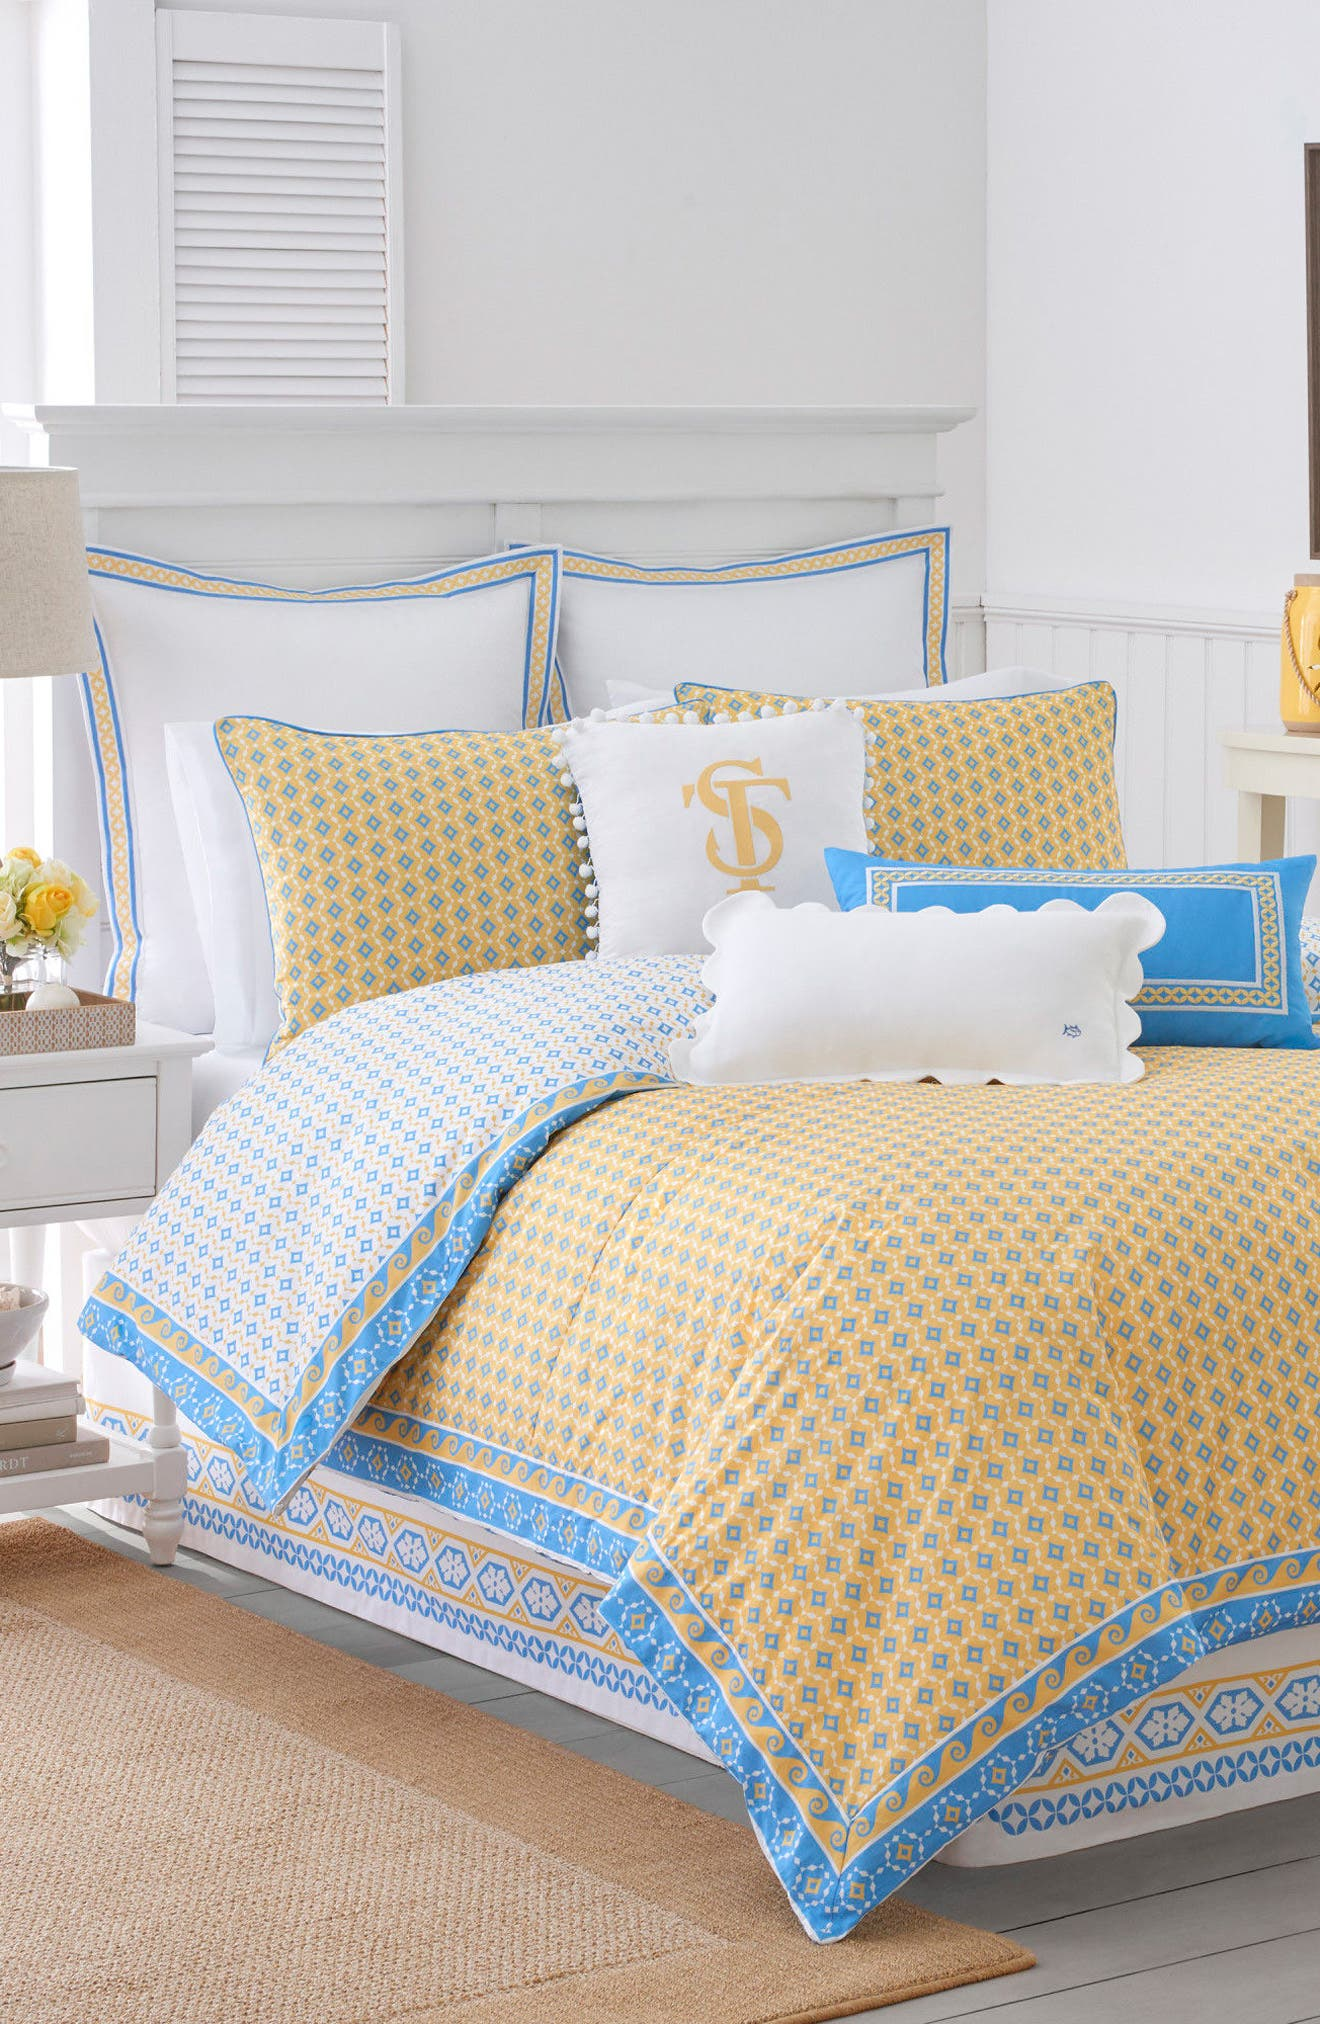 Sailgate Comforter, Sham & Bed Skirt Set,                         Main,                         color, Yellow